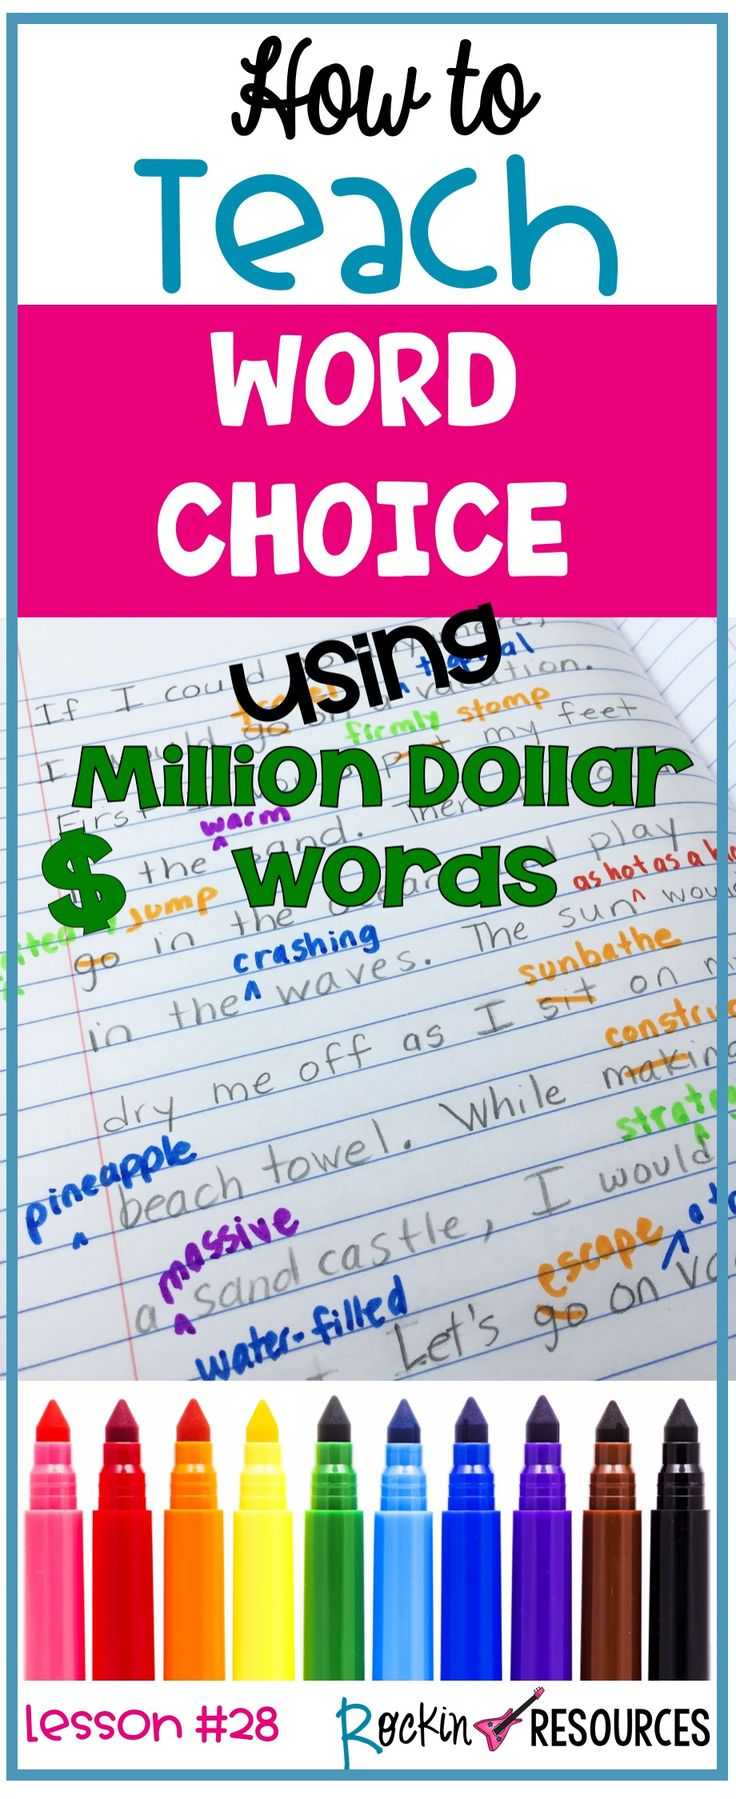 Do your students struggle using strong word choice in their writing? This post is geared towards the upper elementary or middle school curriculum and uses the term MILLION DOLLAR WORDS when referring to word choice. It is part of the revising stage of the writing process. It is also part of a series of writing mini lessons designed for scaffolding in writing workshop.